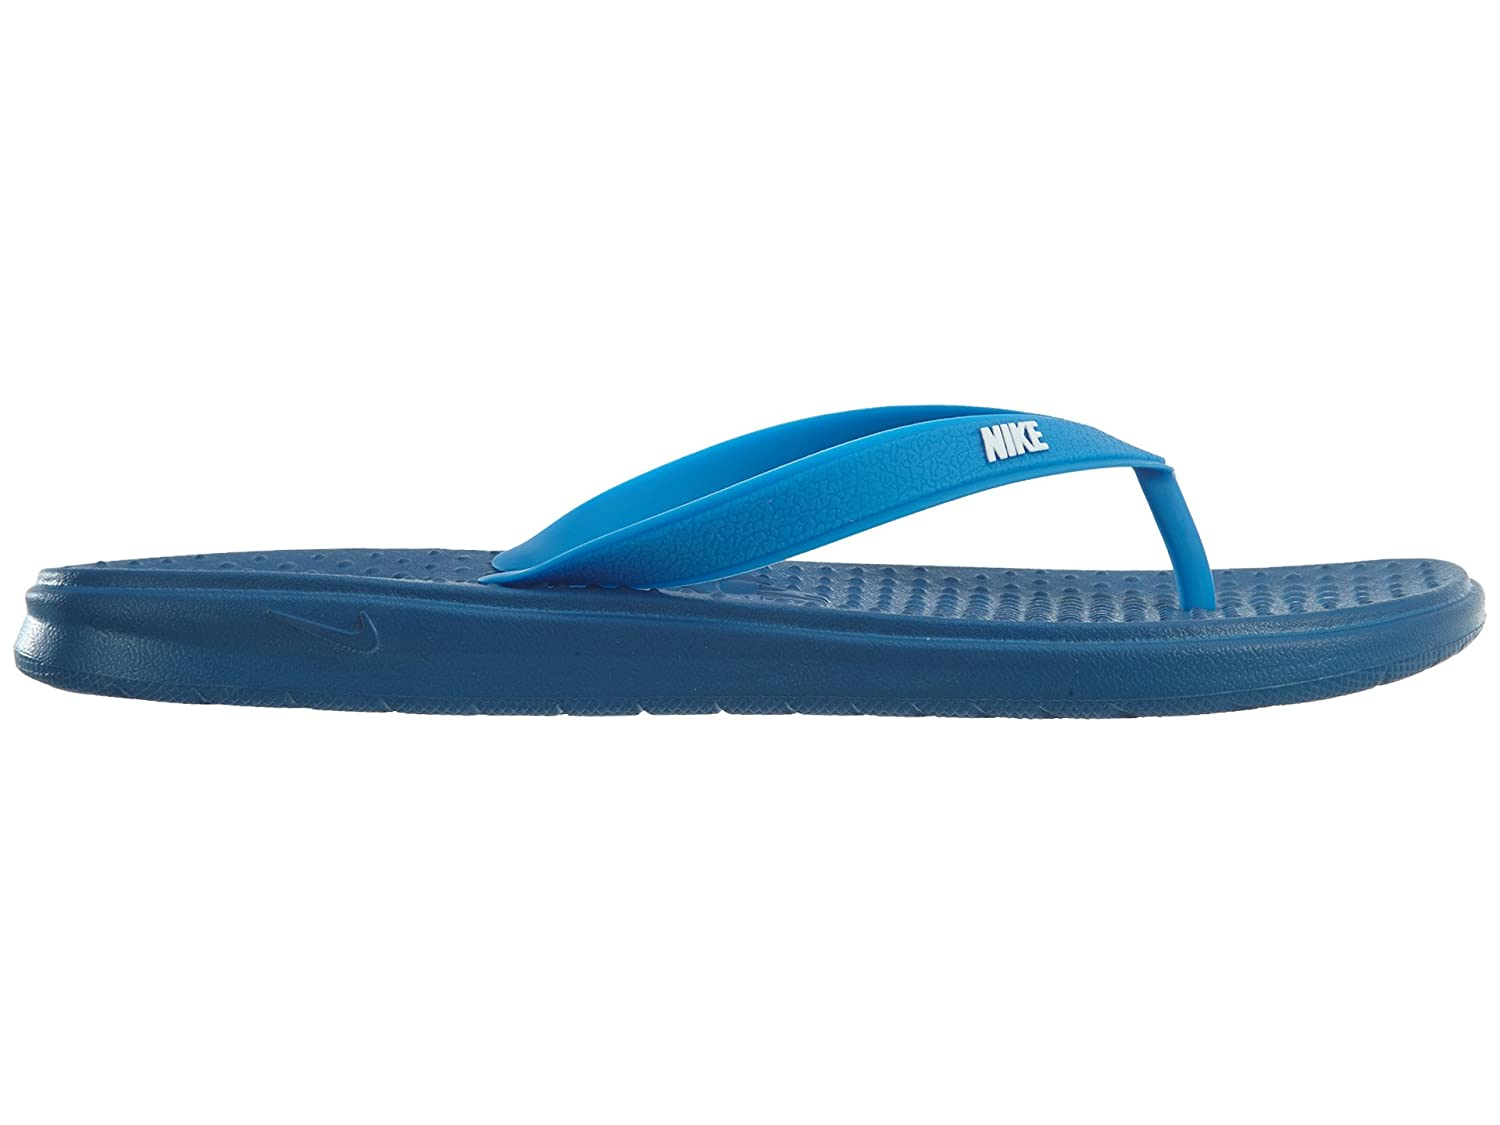 NIKE Solay Thong Big Kids Style 12 Y US 882827-400 Size